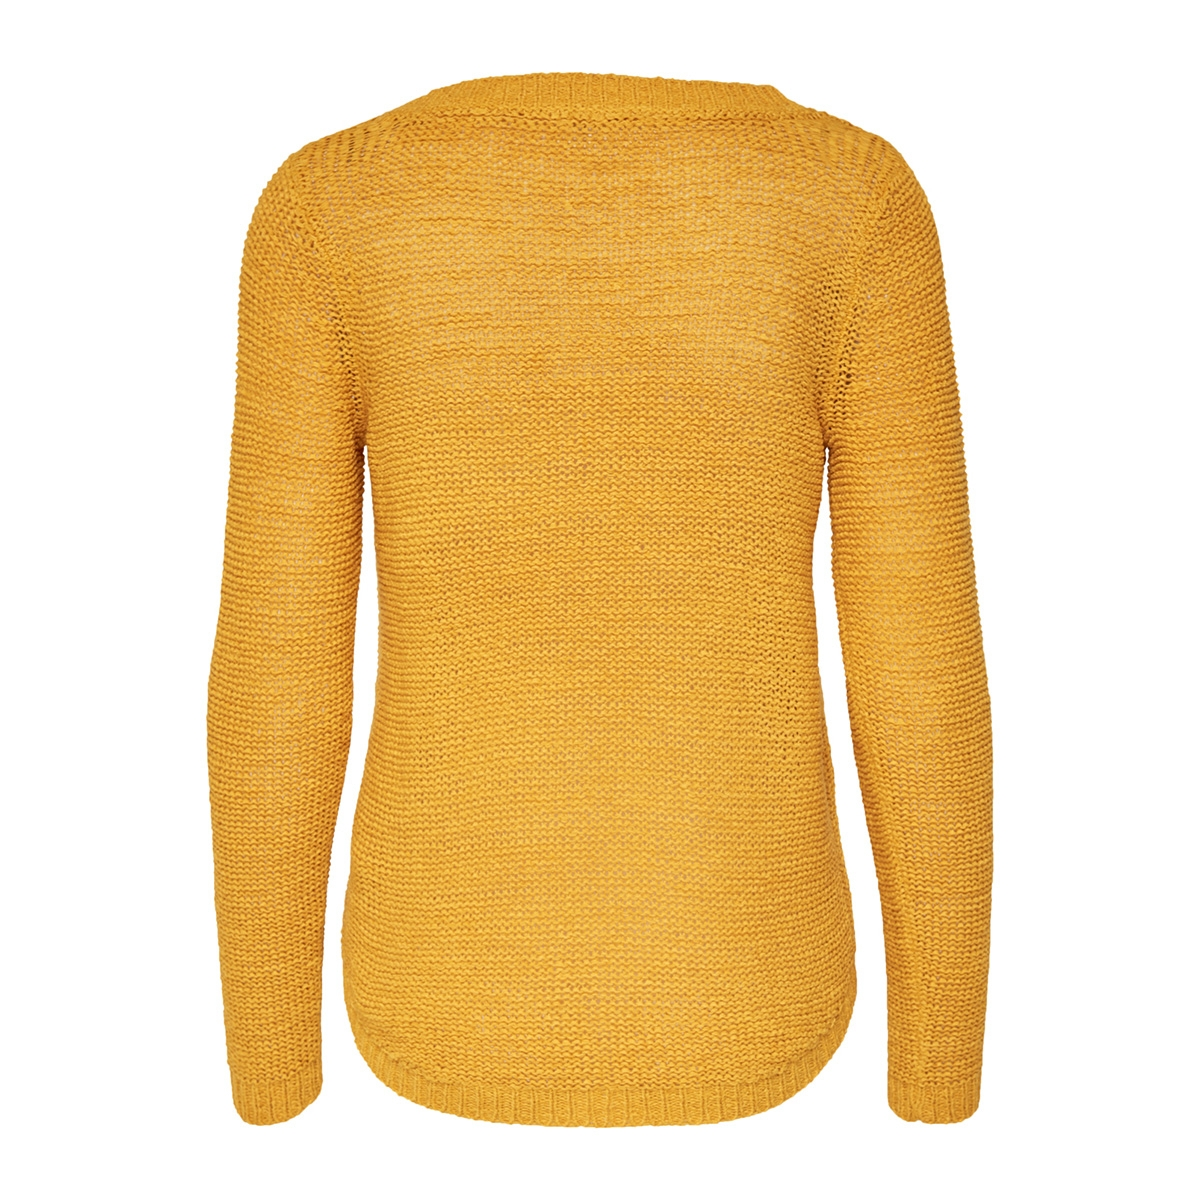 onlgeena xo l/s pullover knt noos 15113356 only trui golden yellow